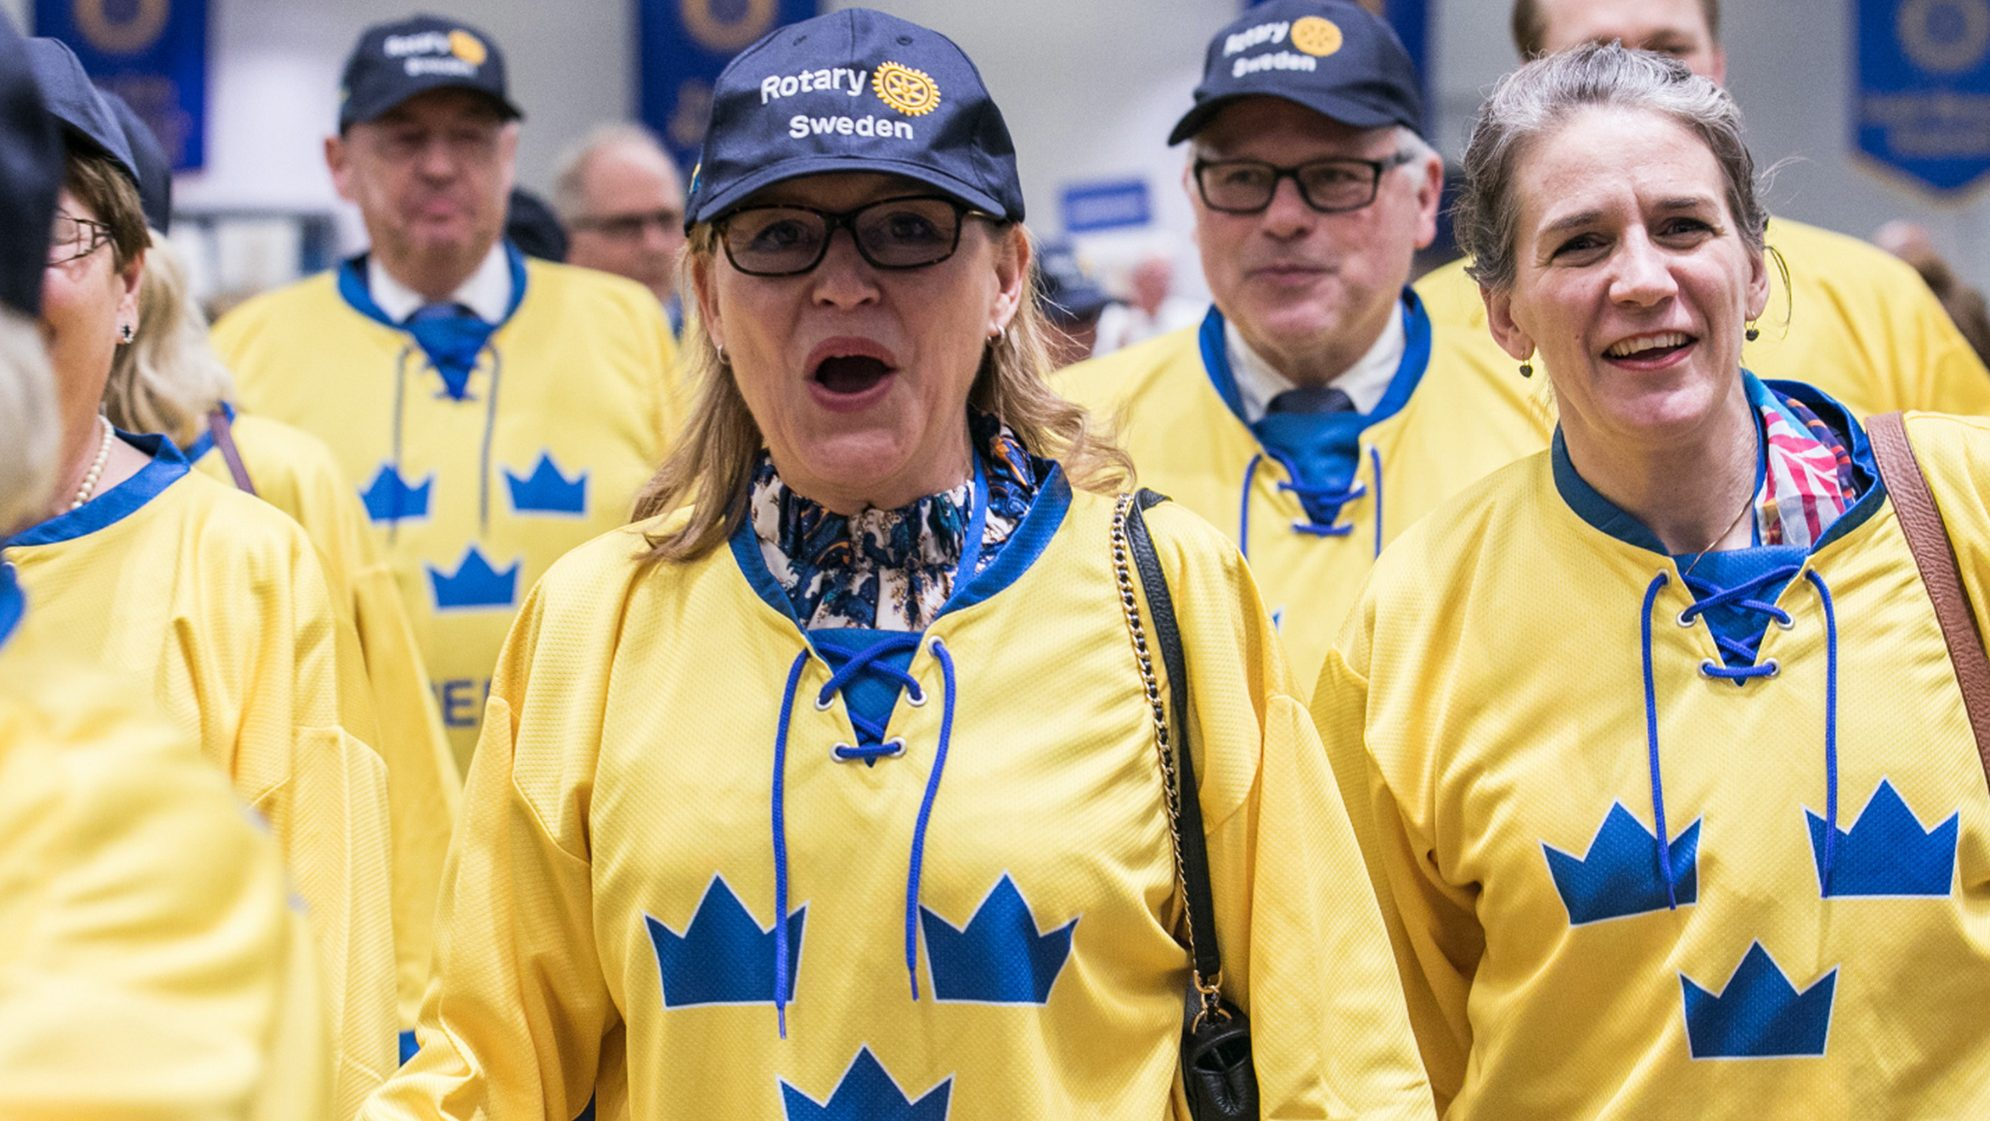 Crowd wearing yellow shirts and blue hats with Rotary Sweden logo.